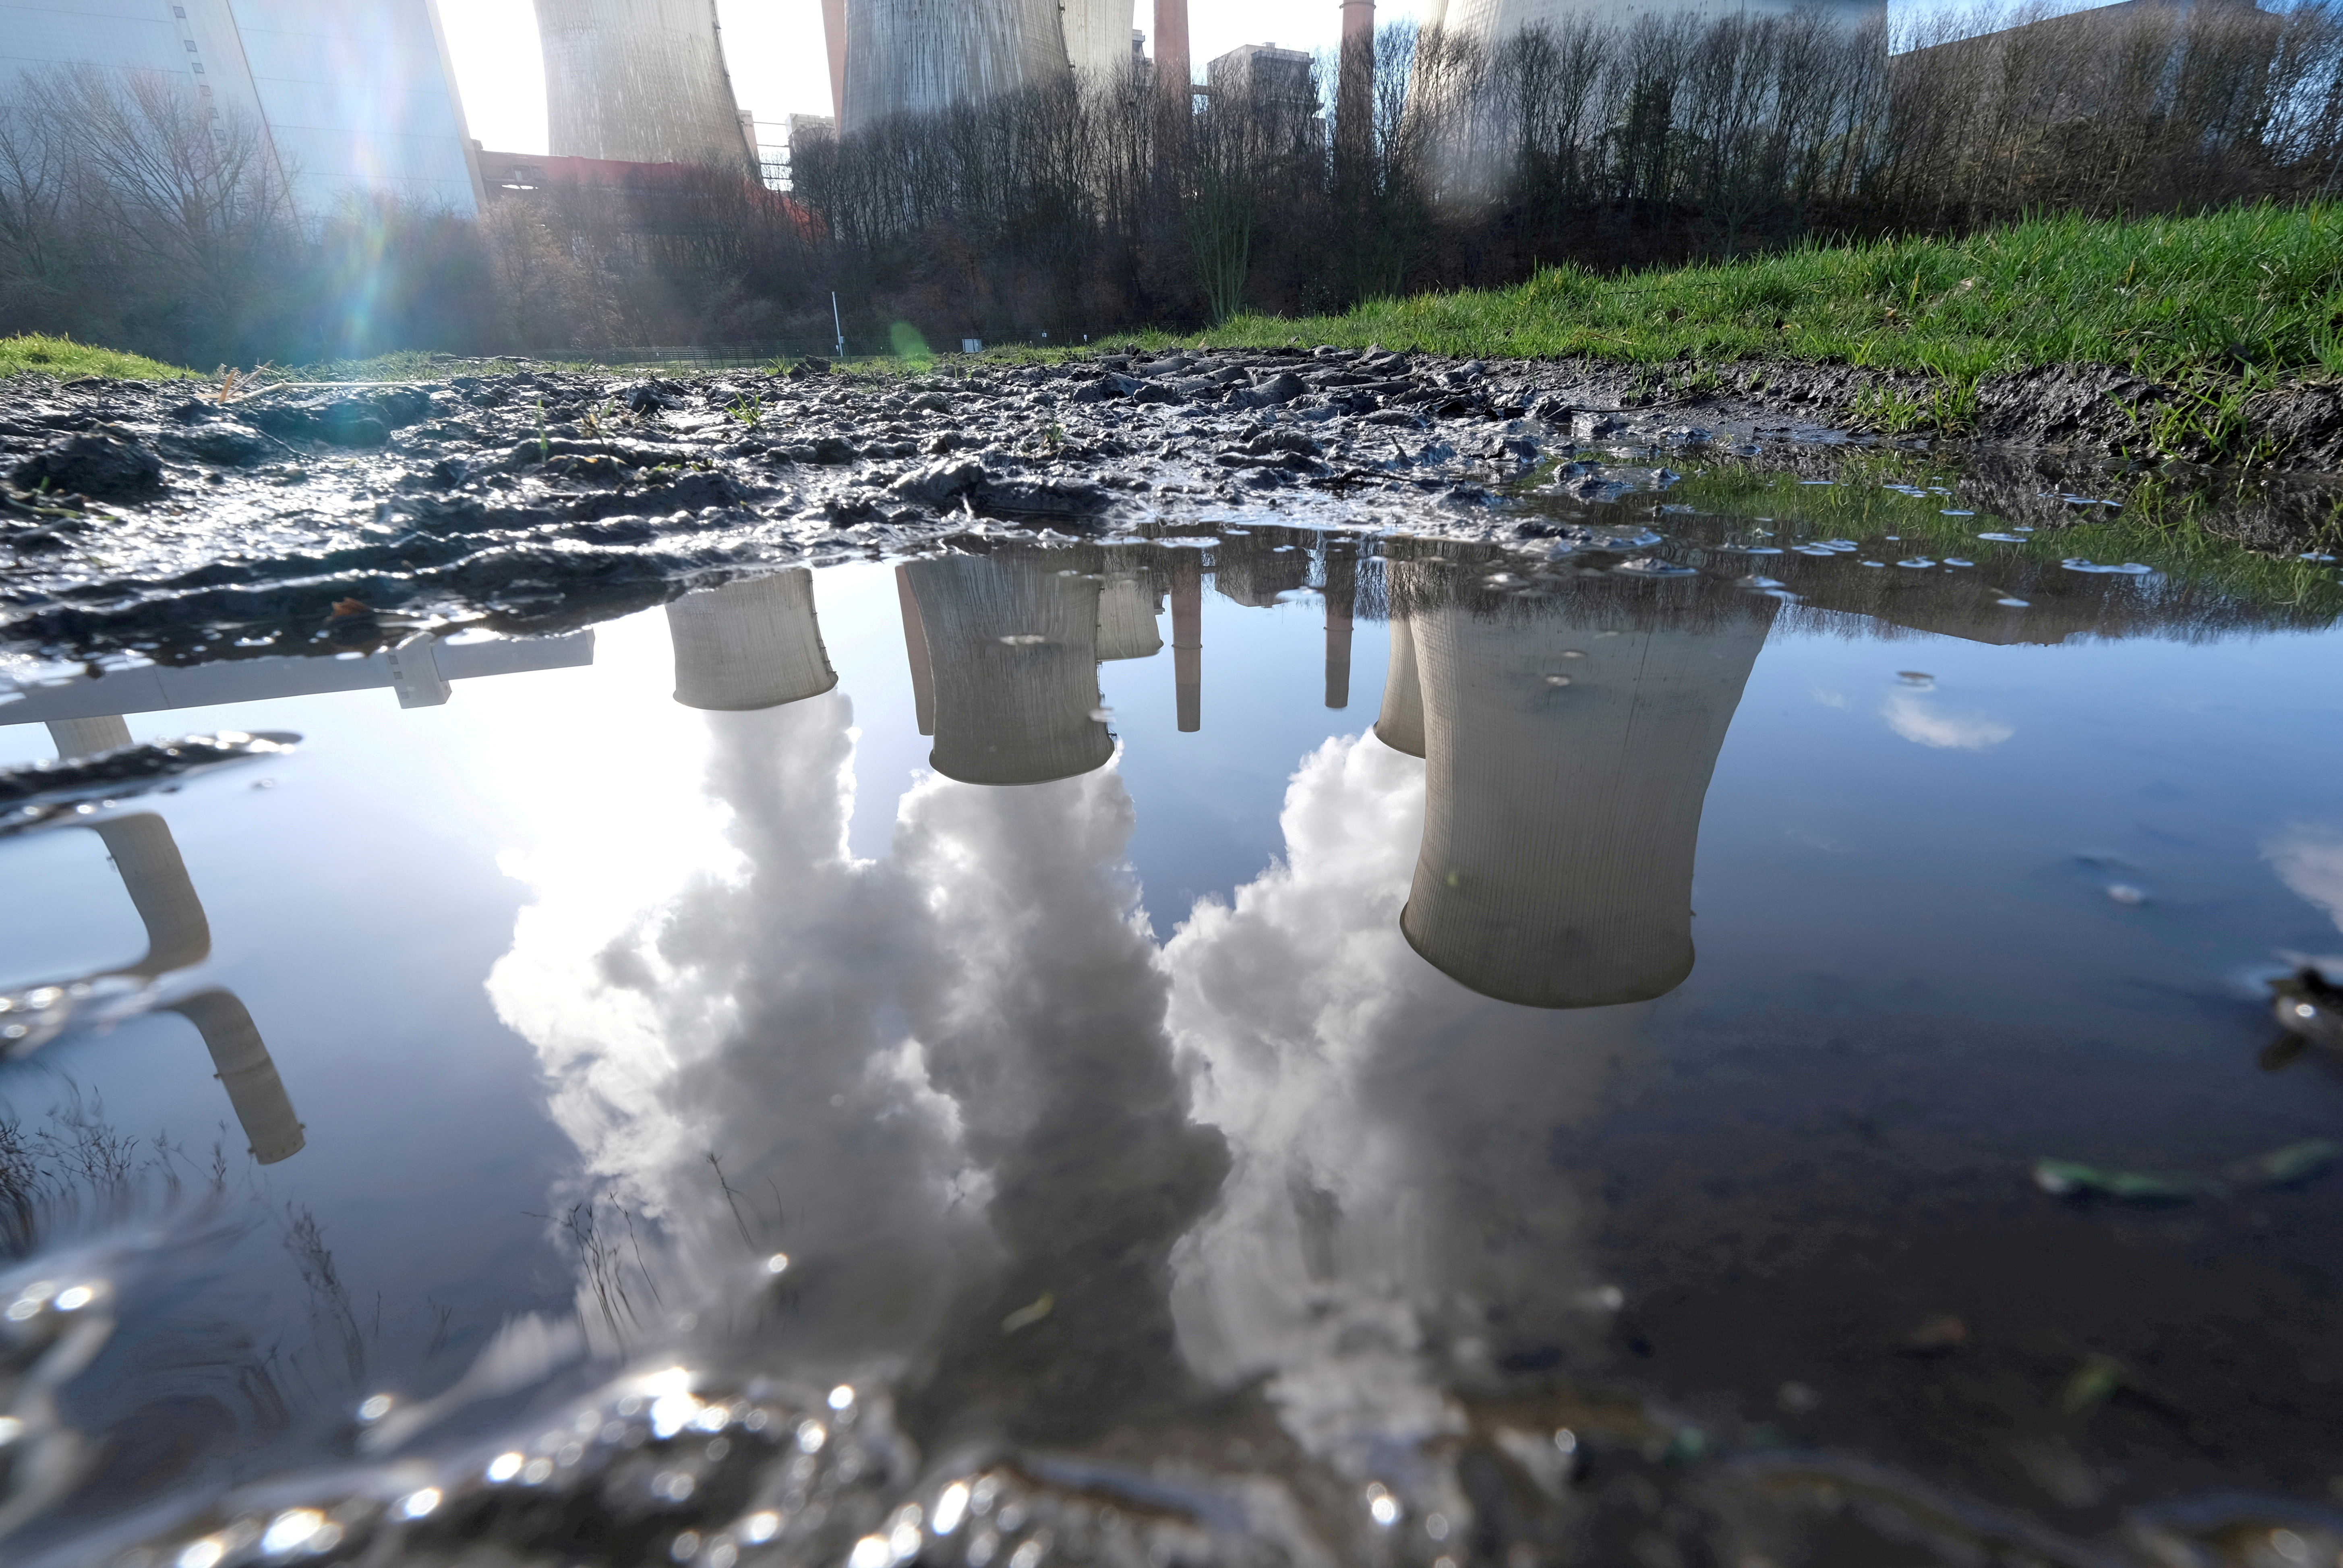 The lignite (brown coal) power plant complex of German energy supplier and utility RWE is reflected in a large puddle in Neurath, northwest of Cologne, Germany, February 5, 2020.    REUTERS/Wolfgang Rattay